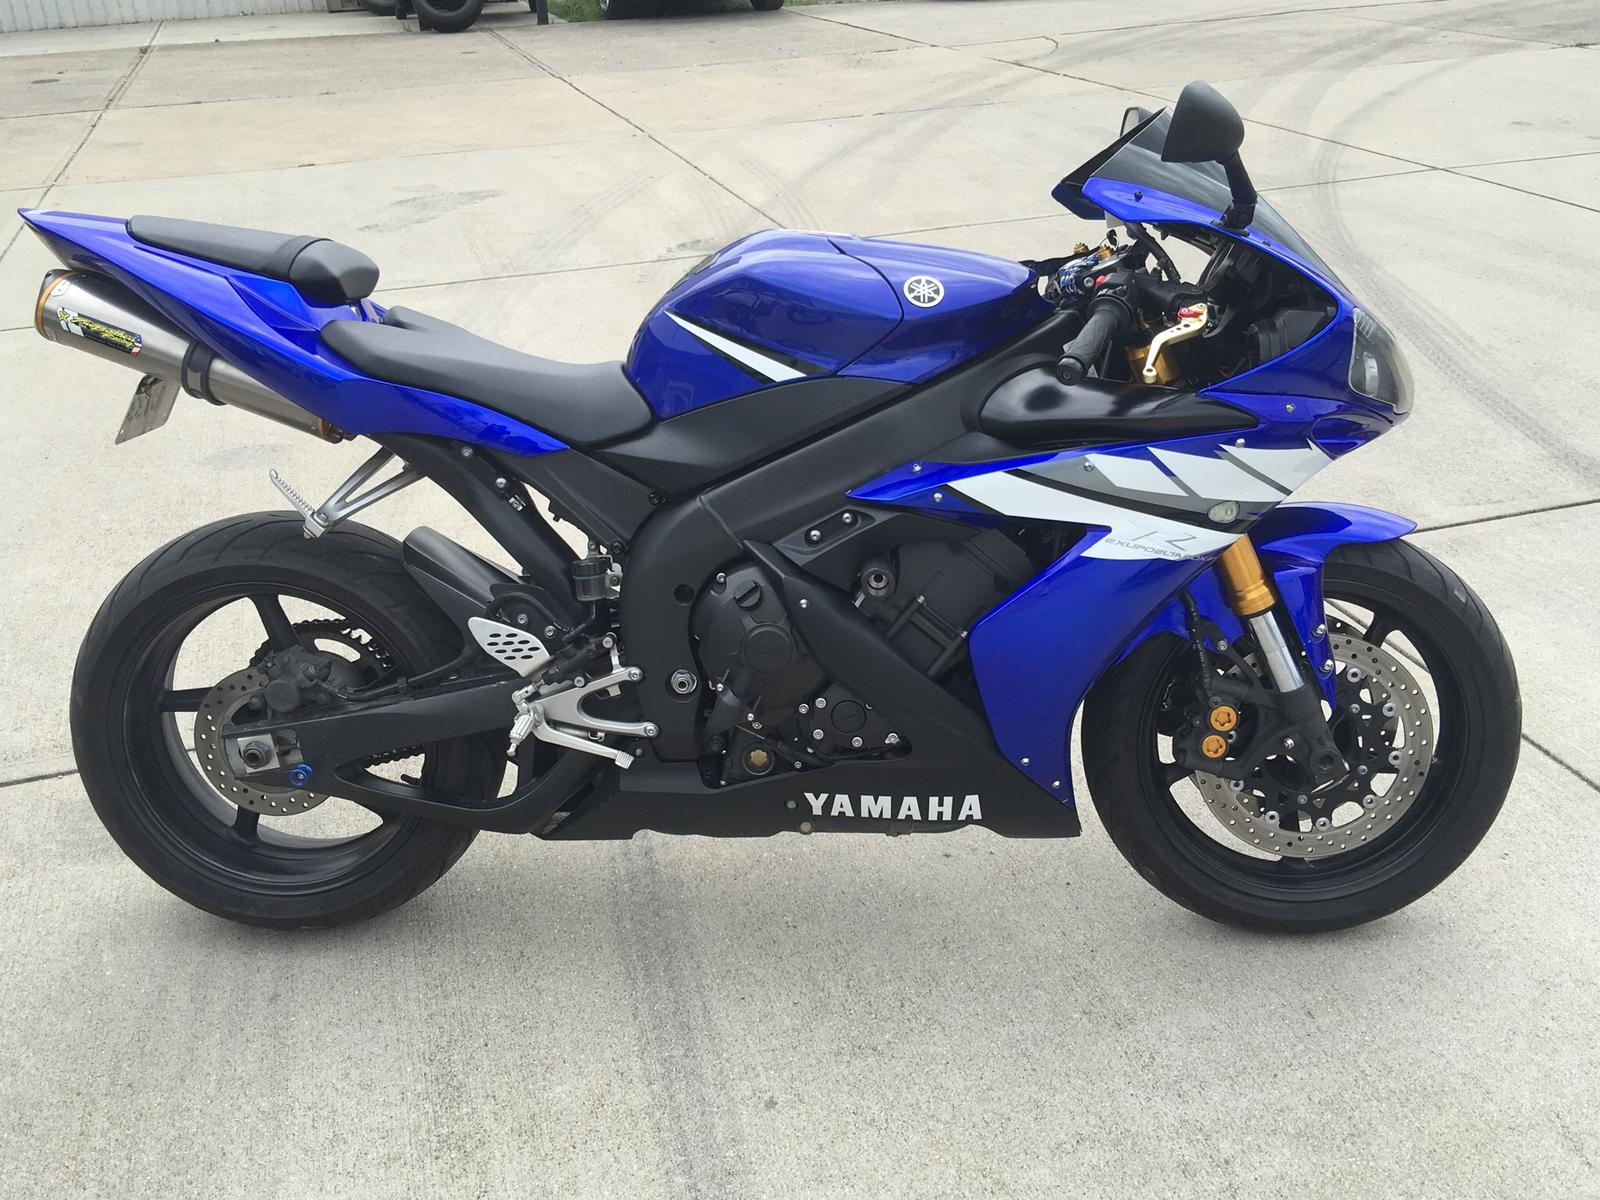 2006 Yamaha YZF-R1 for sale in Walton, KY | GP Motor Sales (859) 485 ...